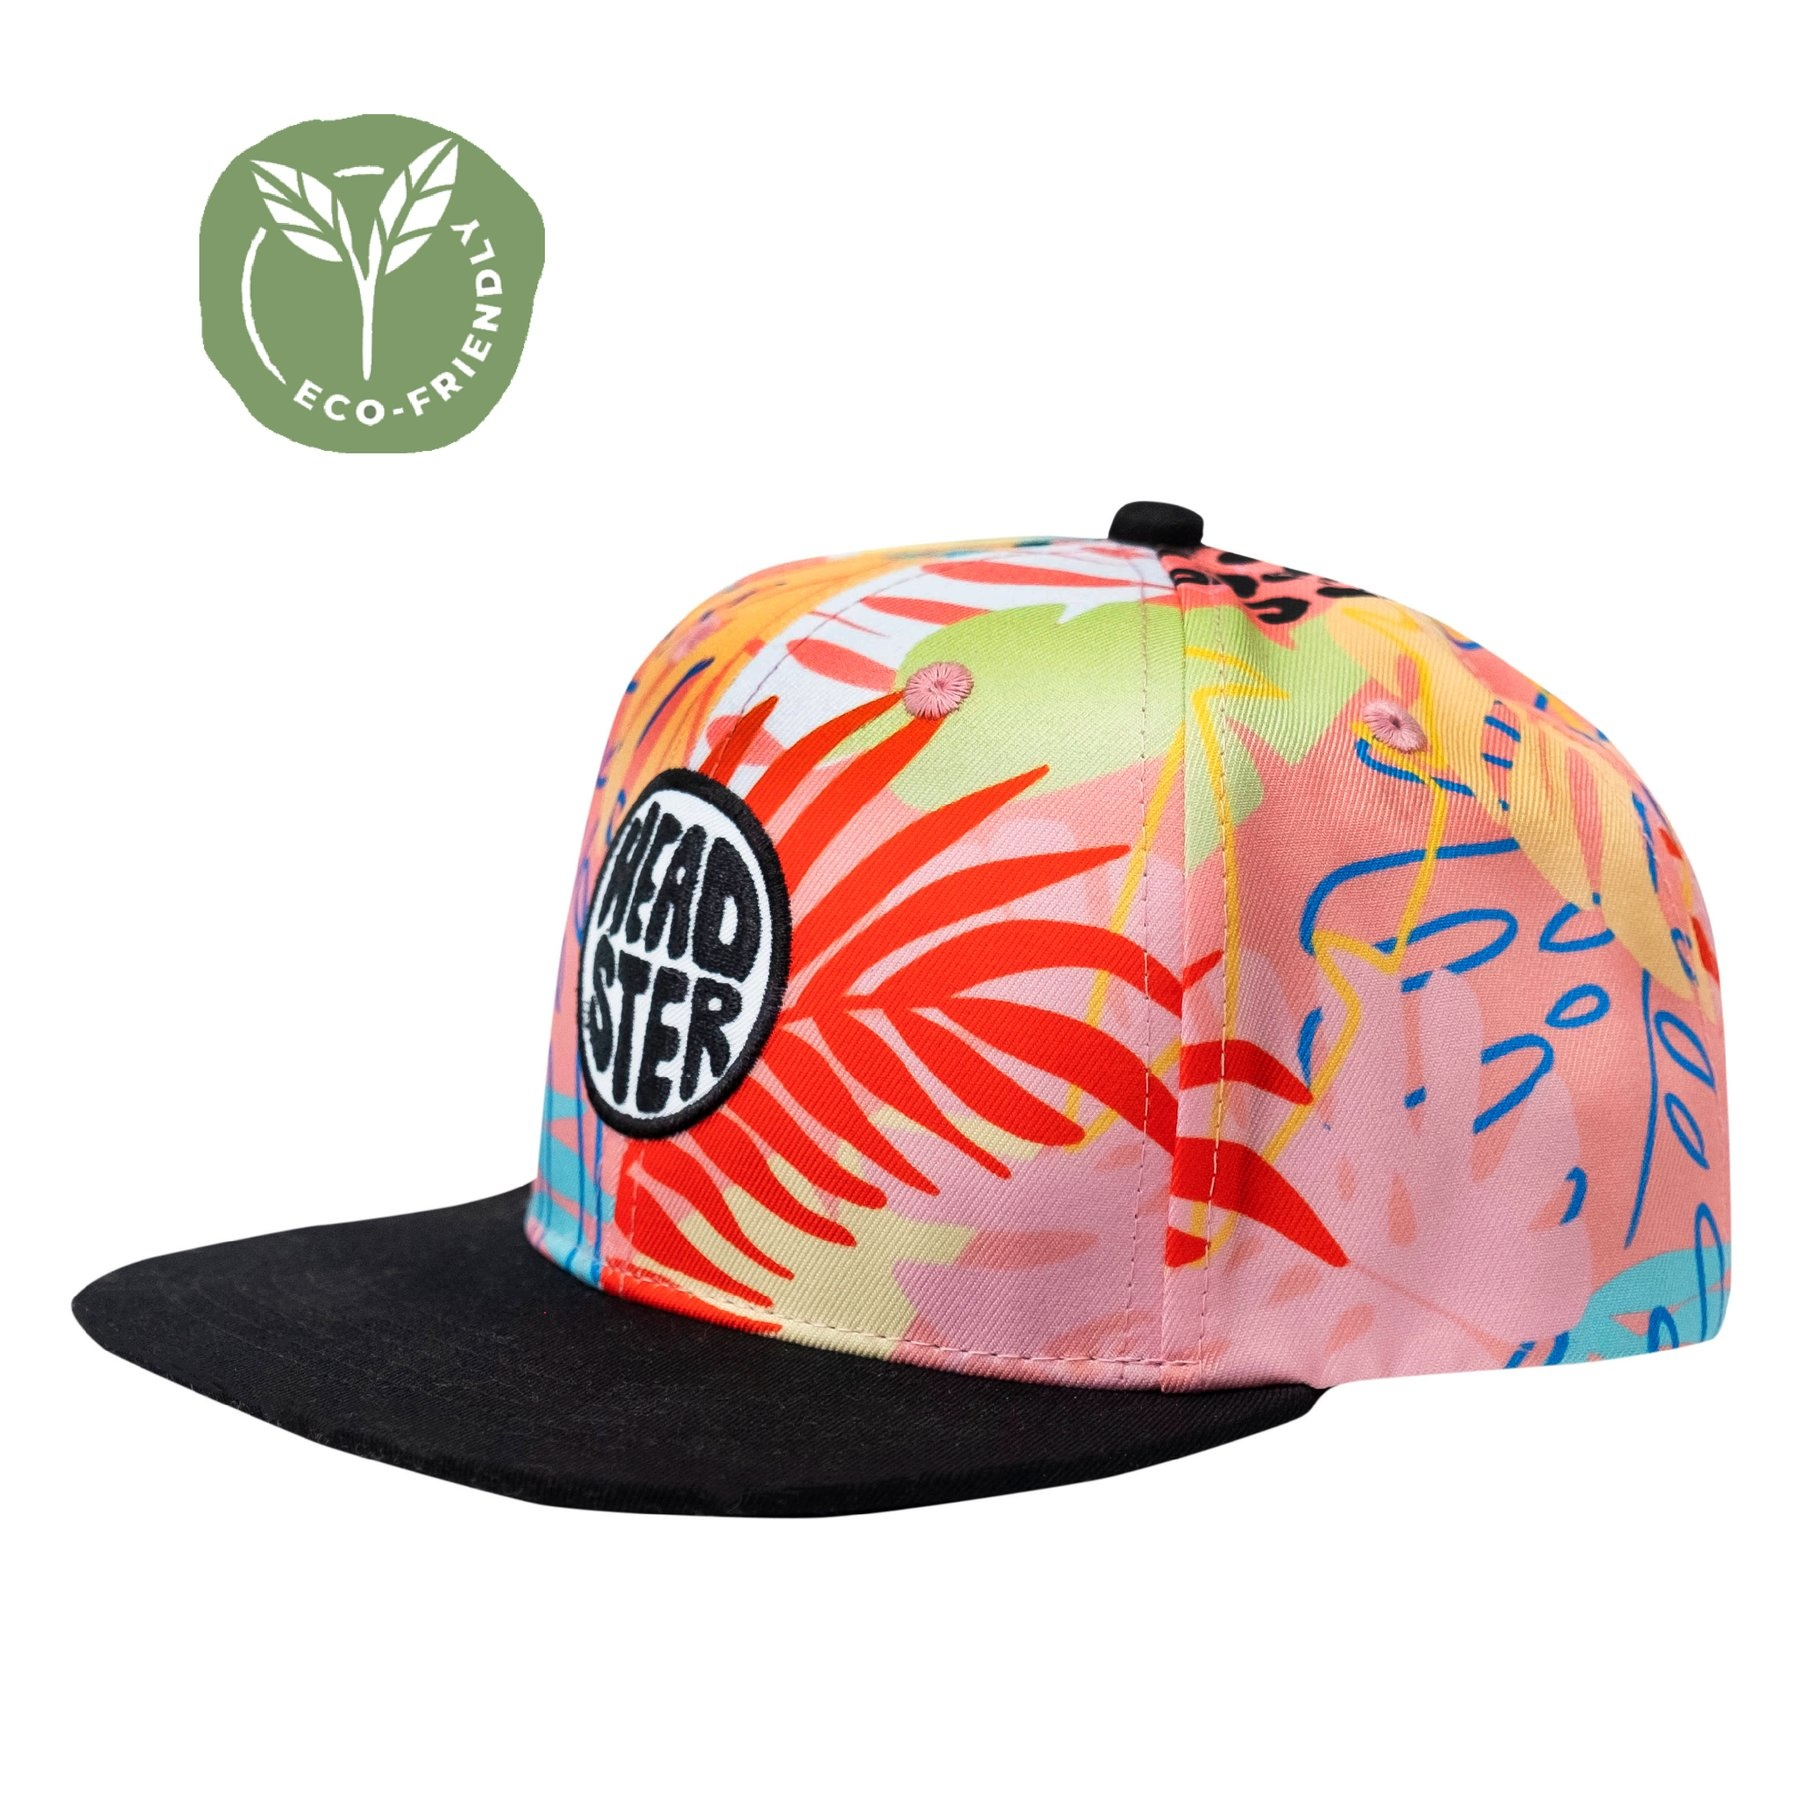 Headster Headster Hat Tropic Pink